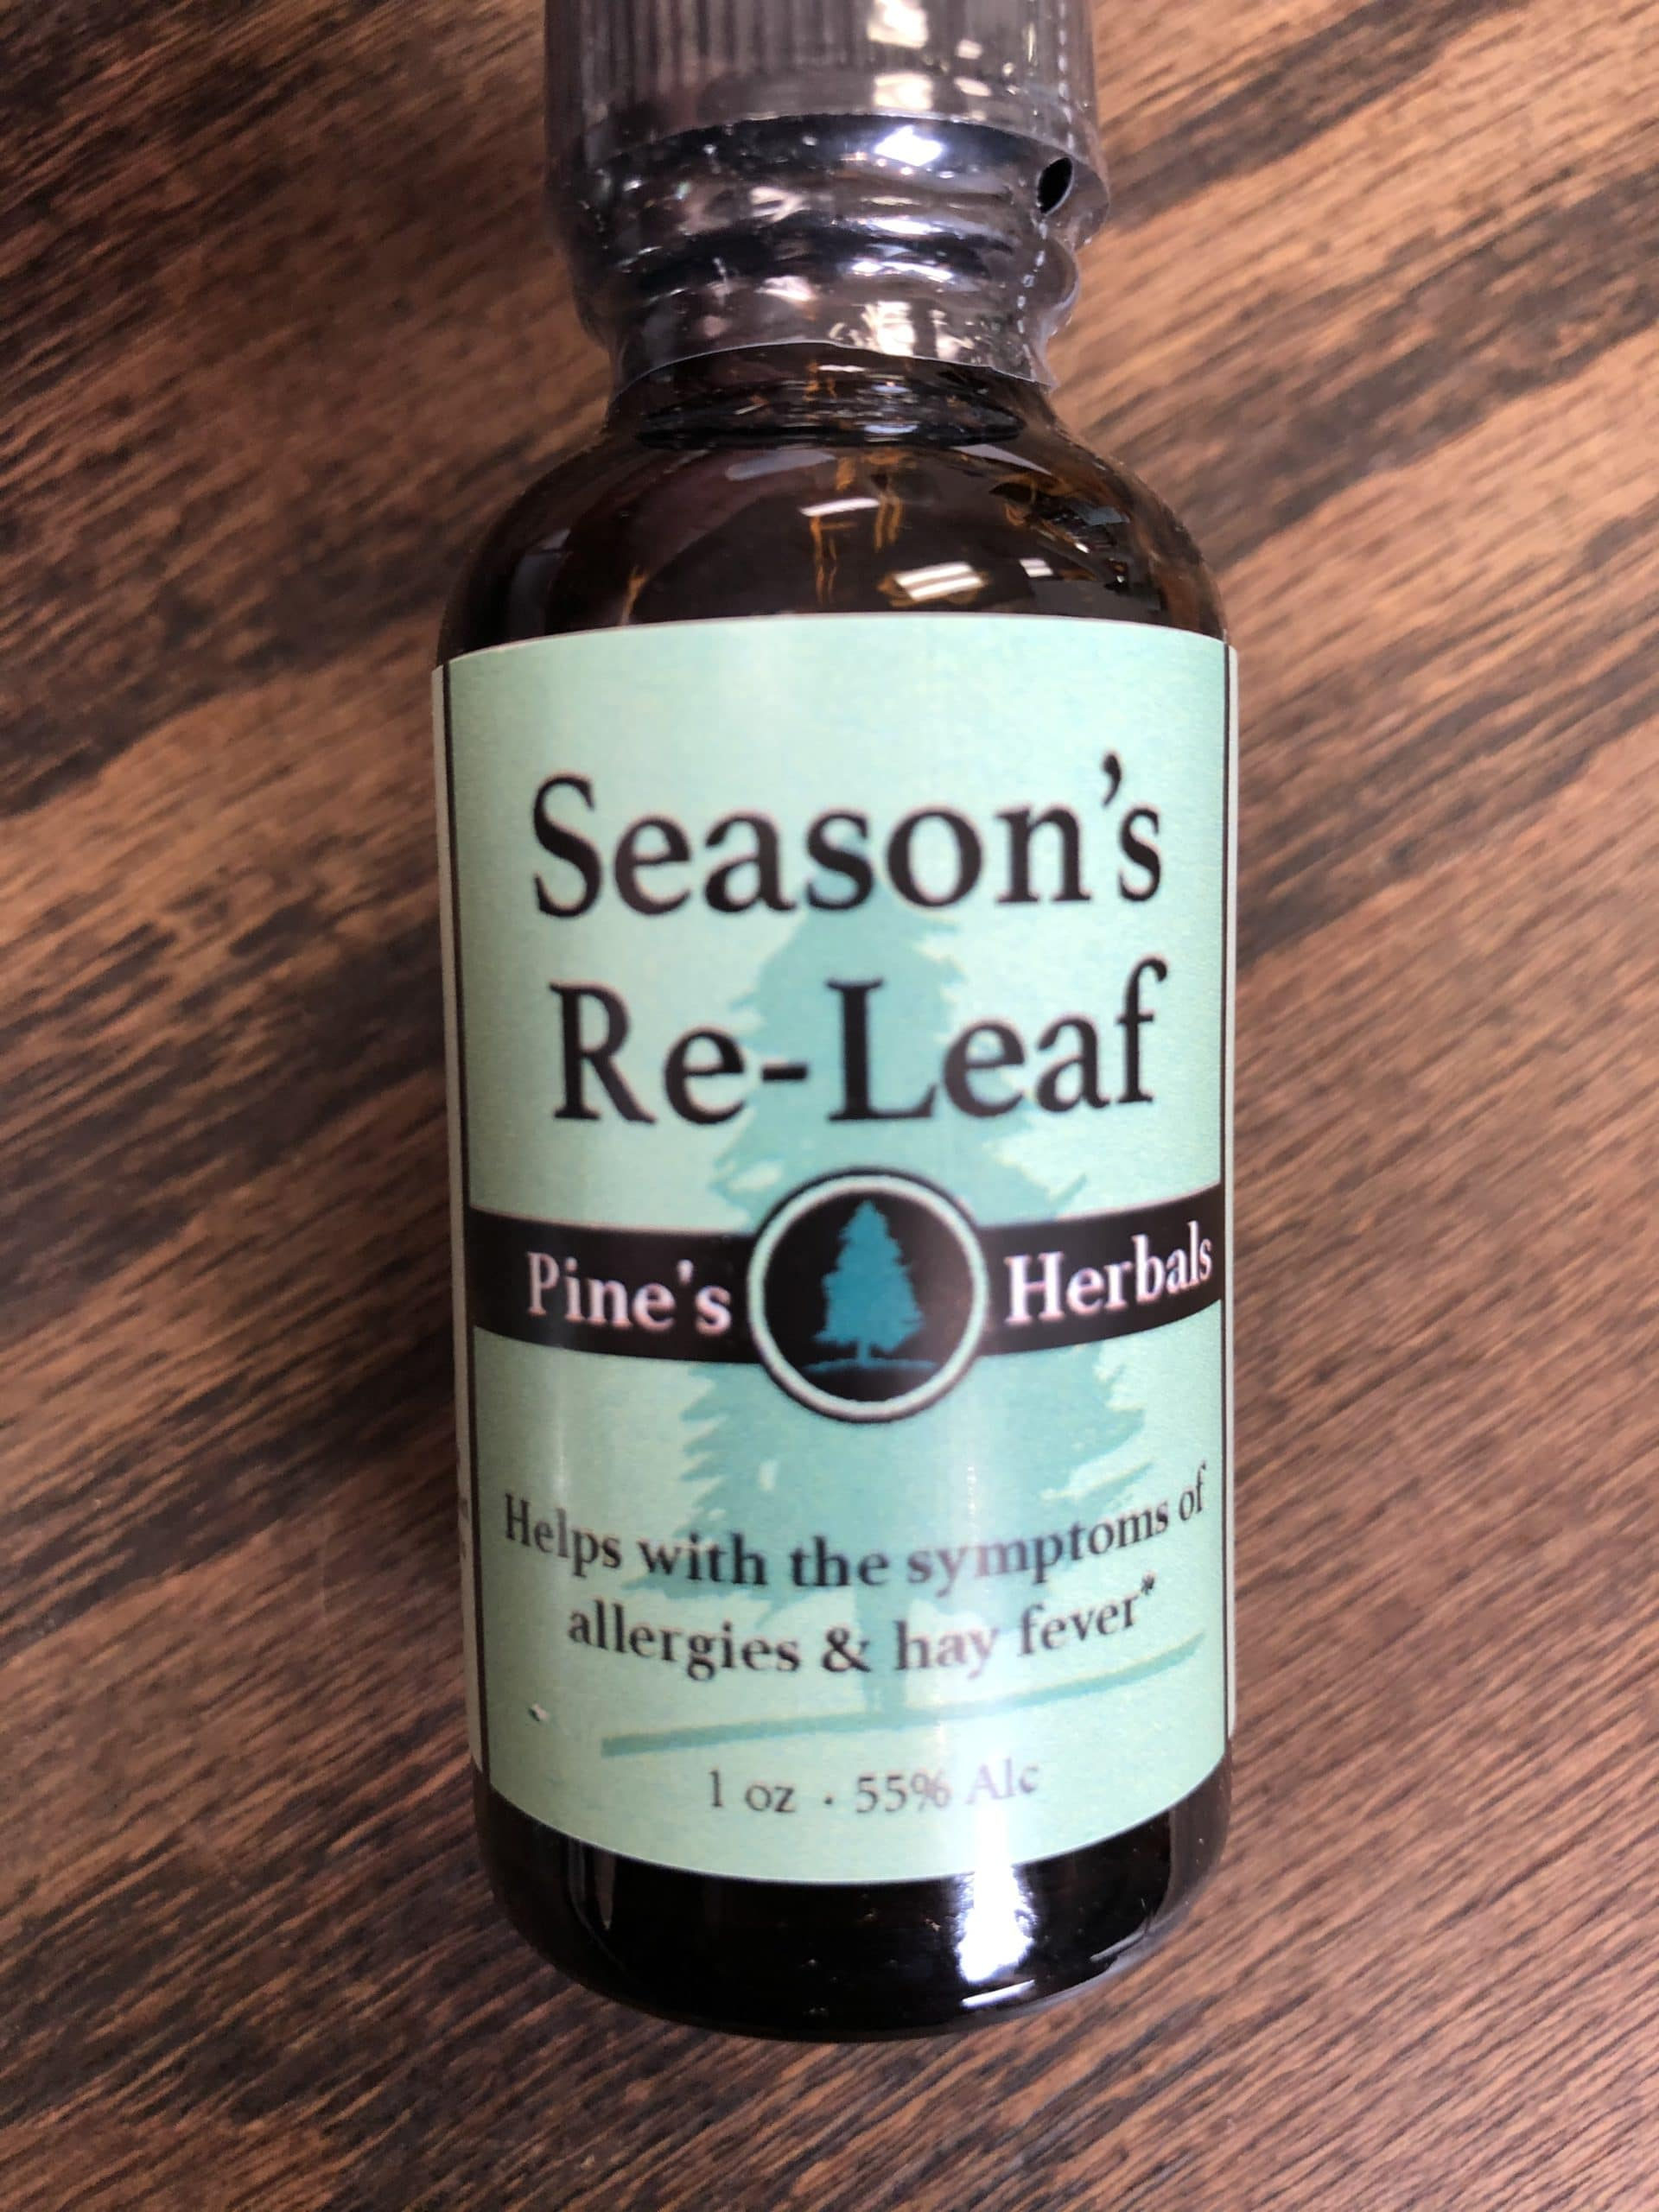 Season's Re-Leaf, Pine's Herbals